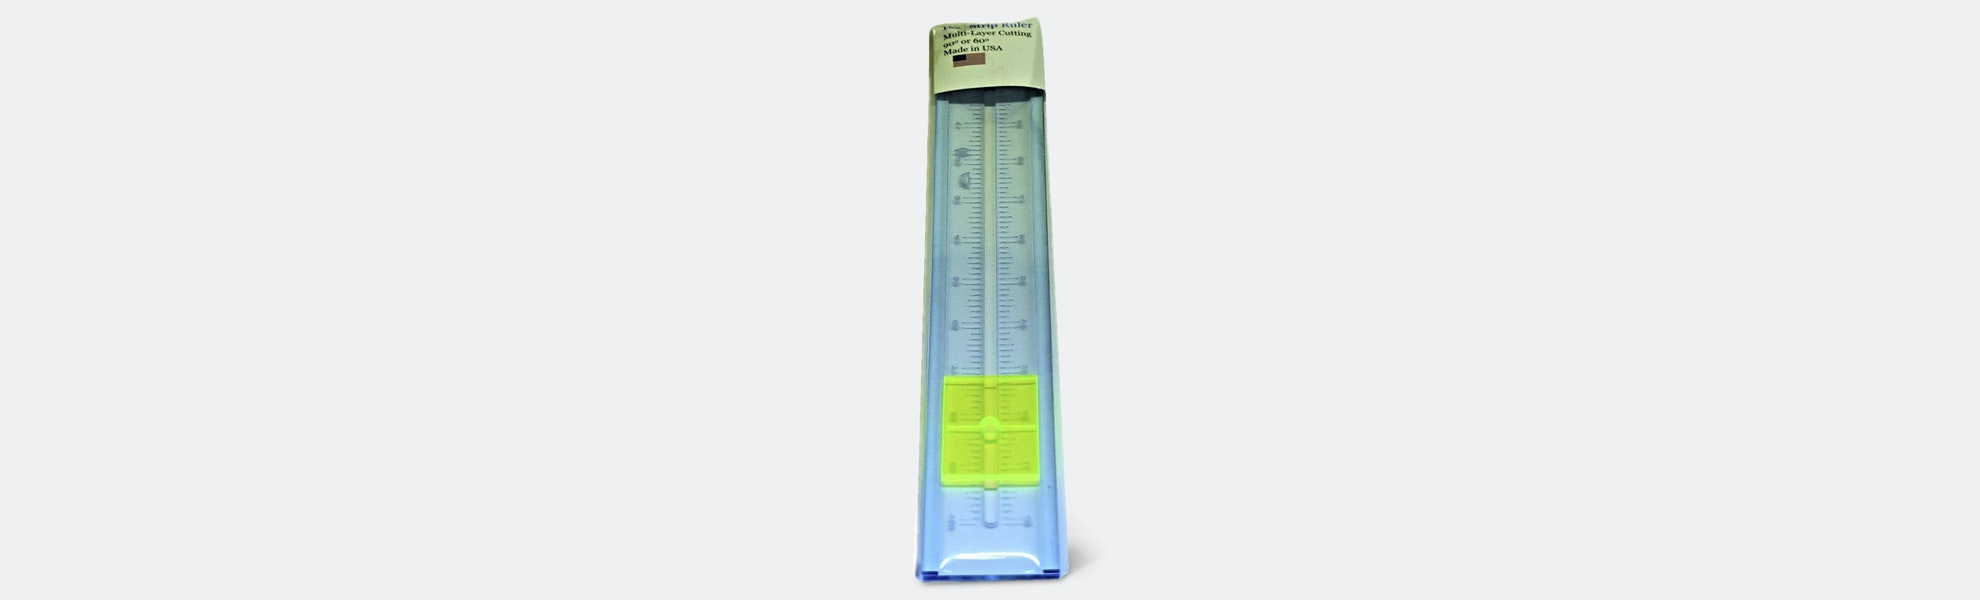 Strip Ruler by PM Quilting